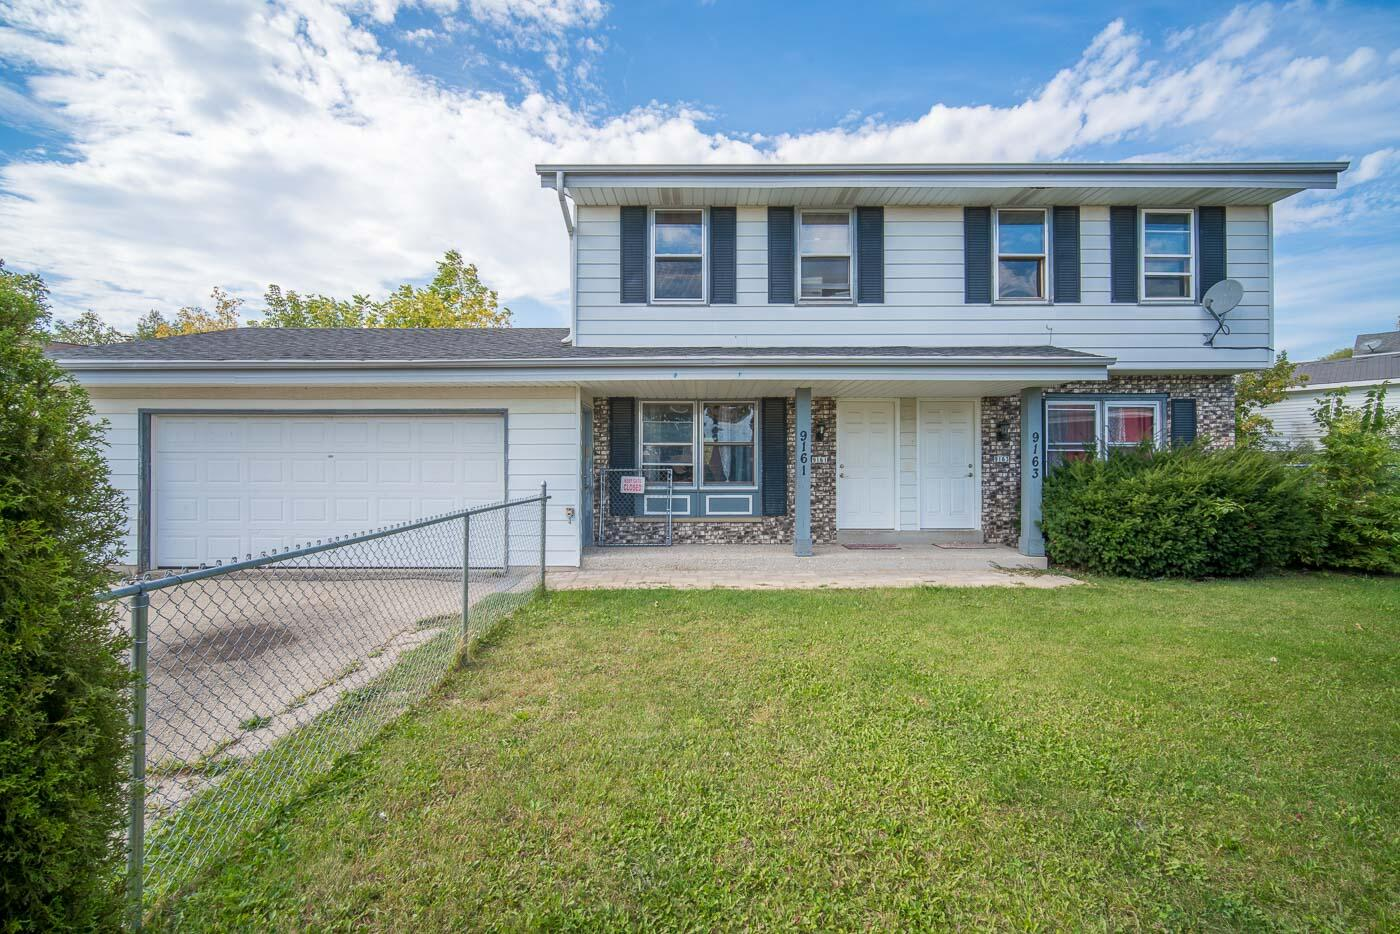 9161 86th Ct, Milwaukee, Wisconsin 53224, 3 Bedrooms Bedrooms, 5 Rooms Rooms,1 BathroomBathrooms,Two-Family,For Sale,86th Ct,1,1768300